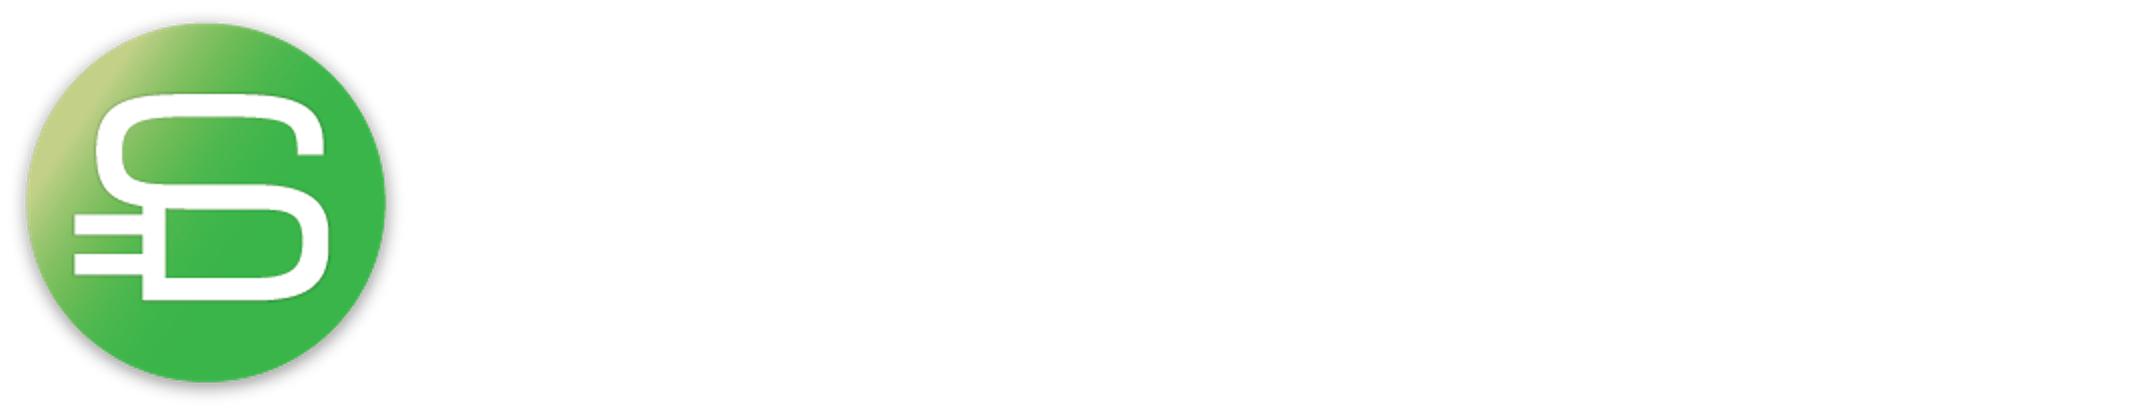 San Diego Energy District Web Site